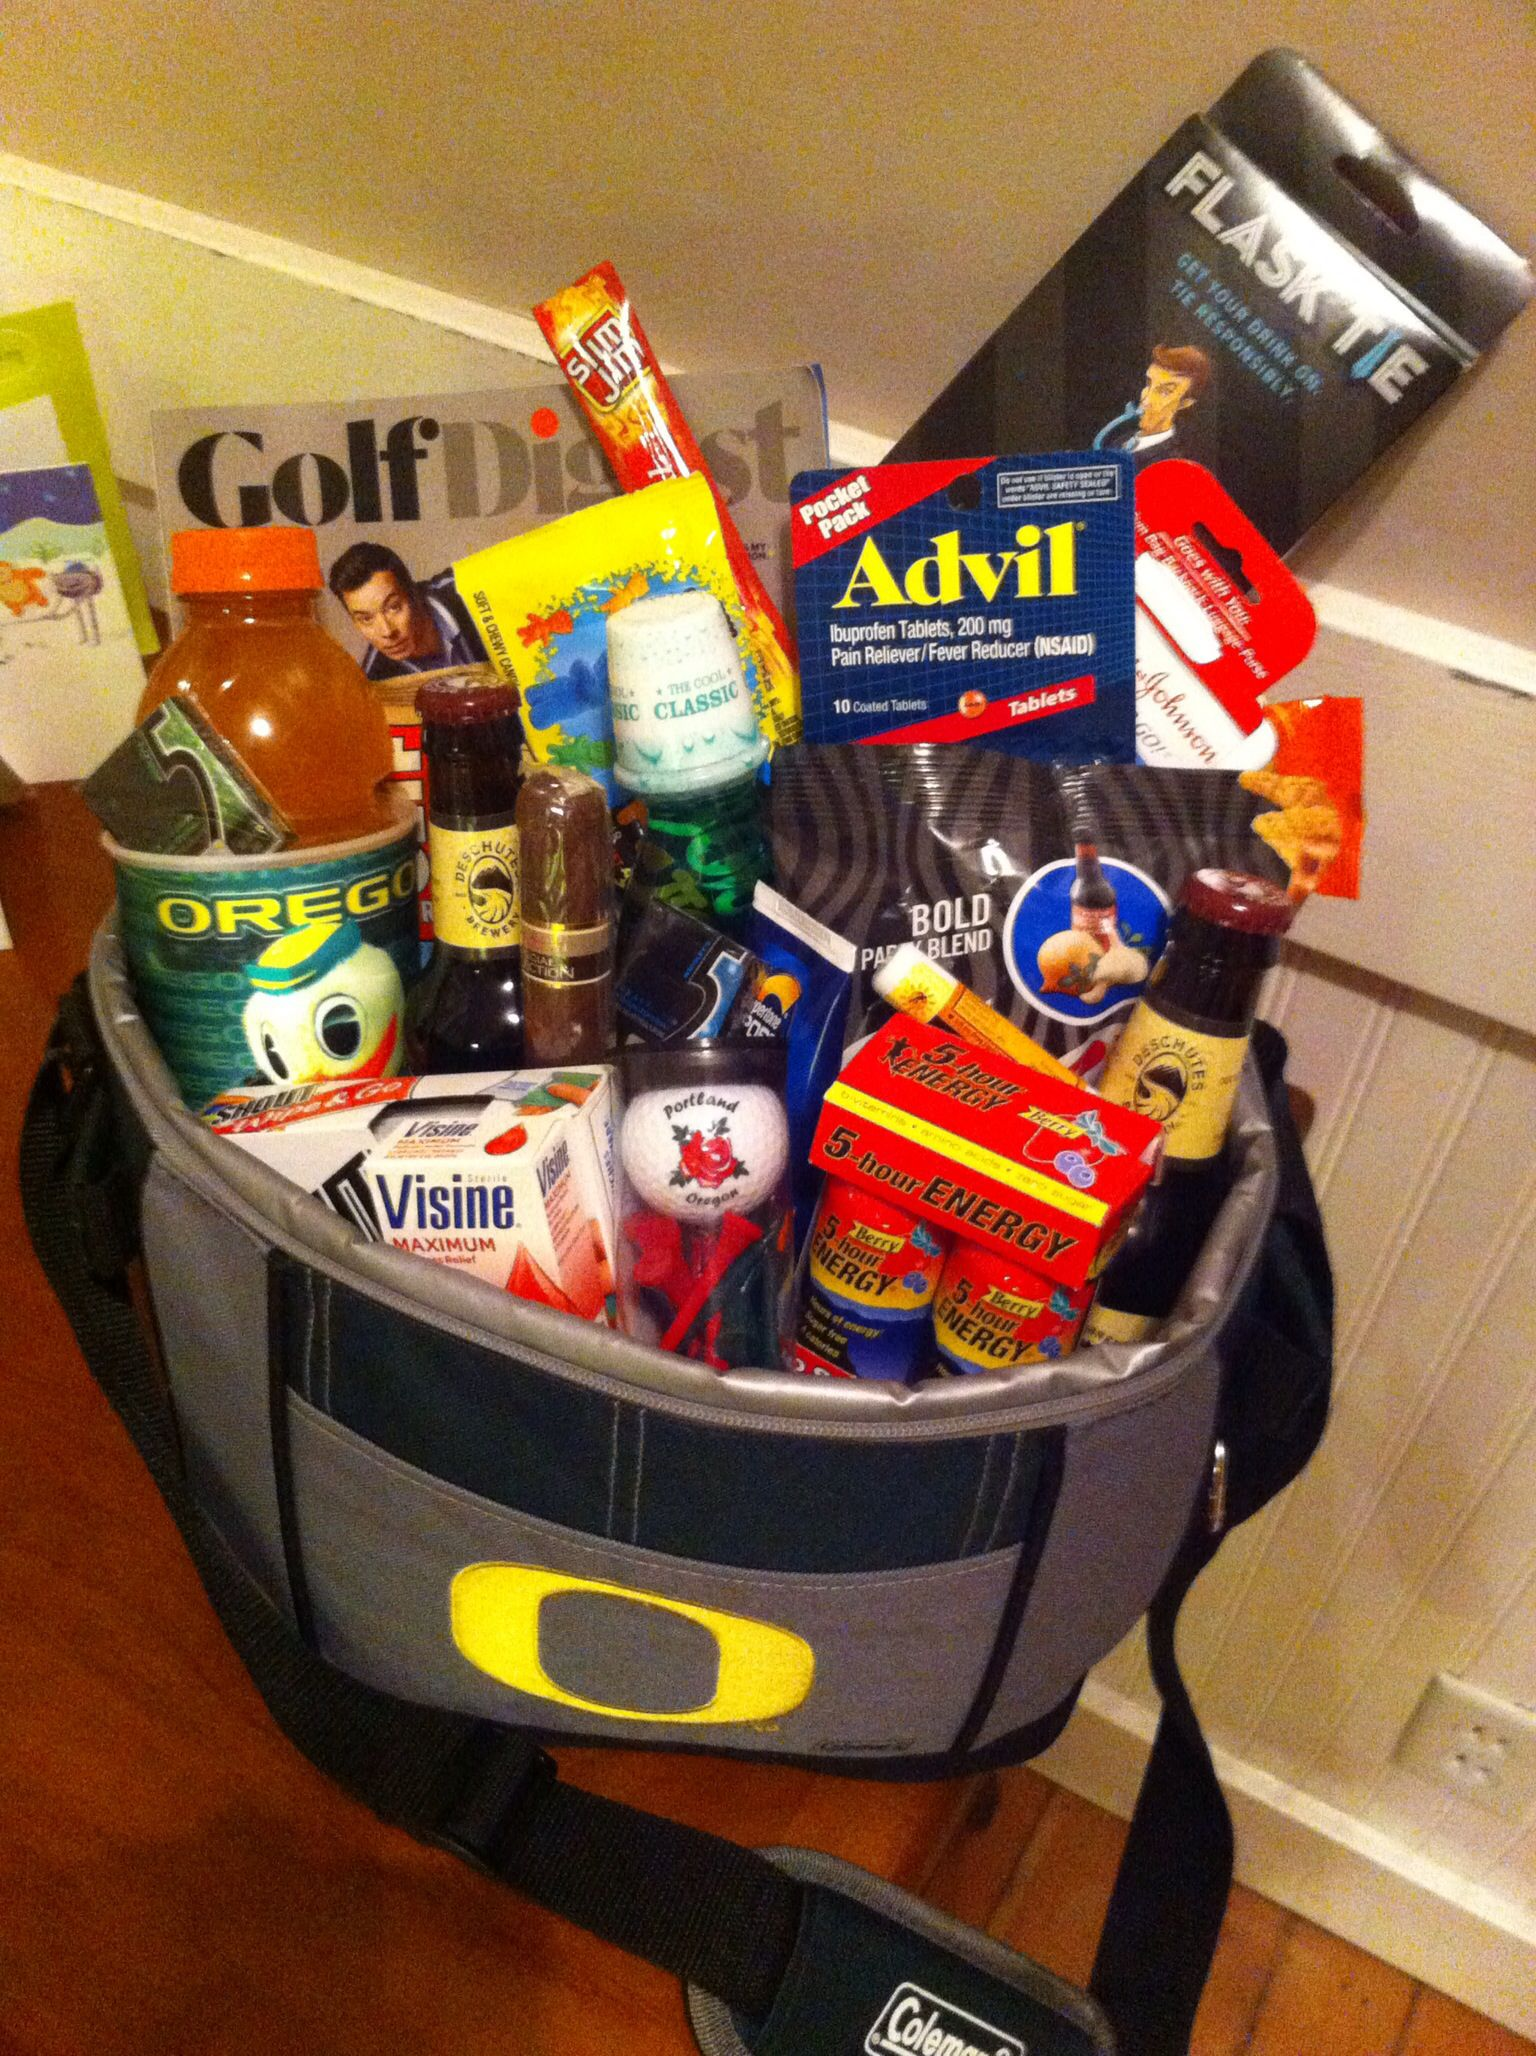 Bachelor party golf weekend survival kit for groom-to-be! | party ...